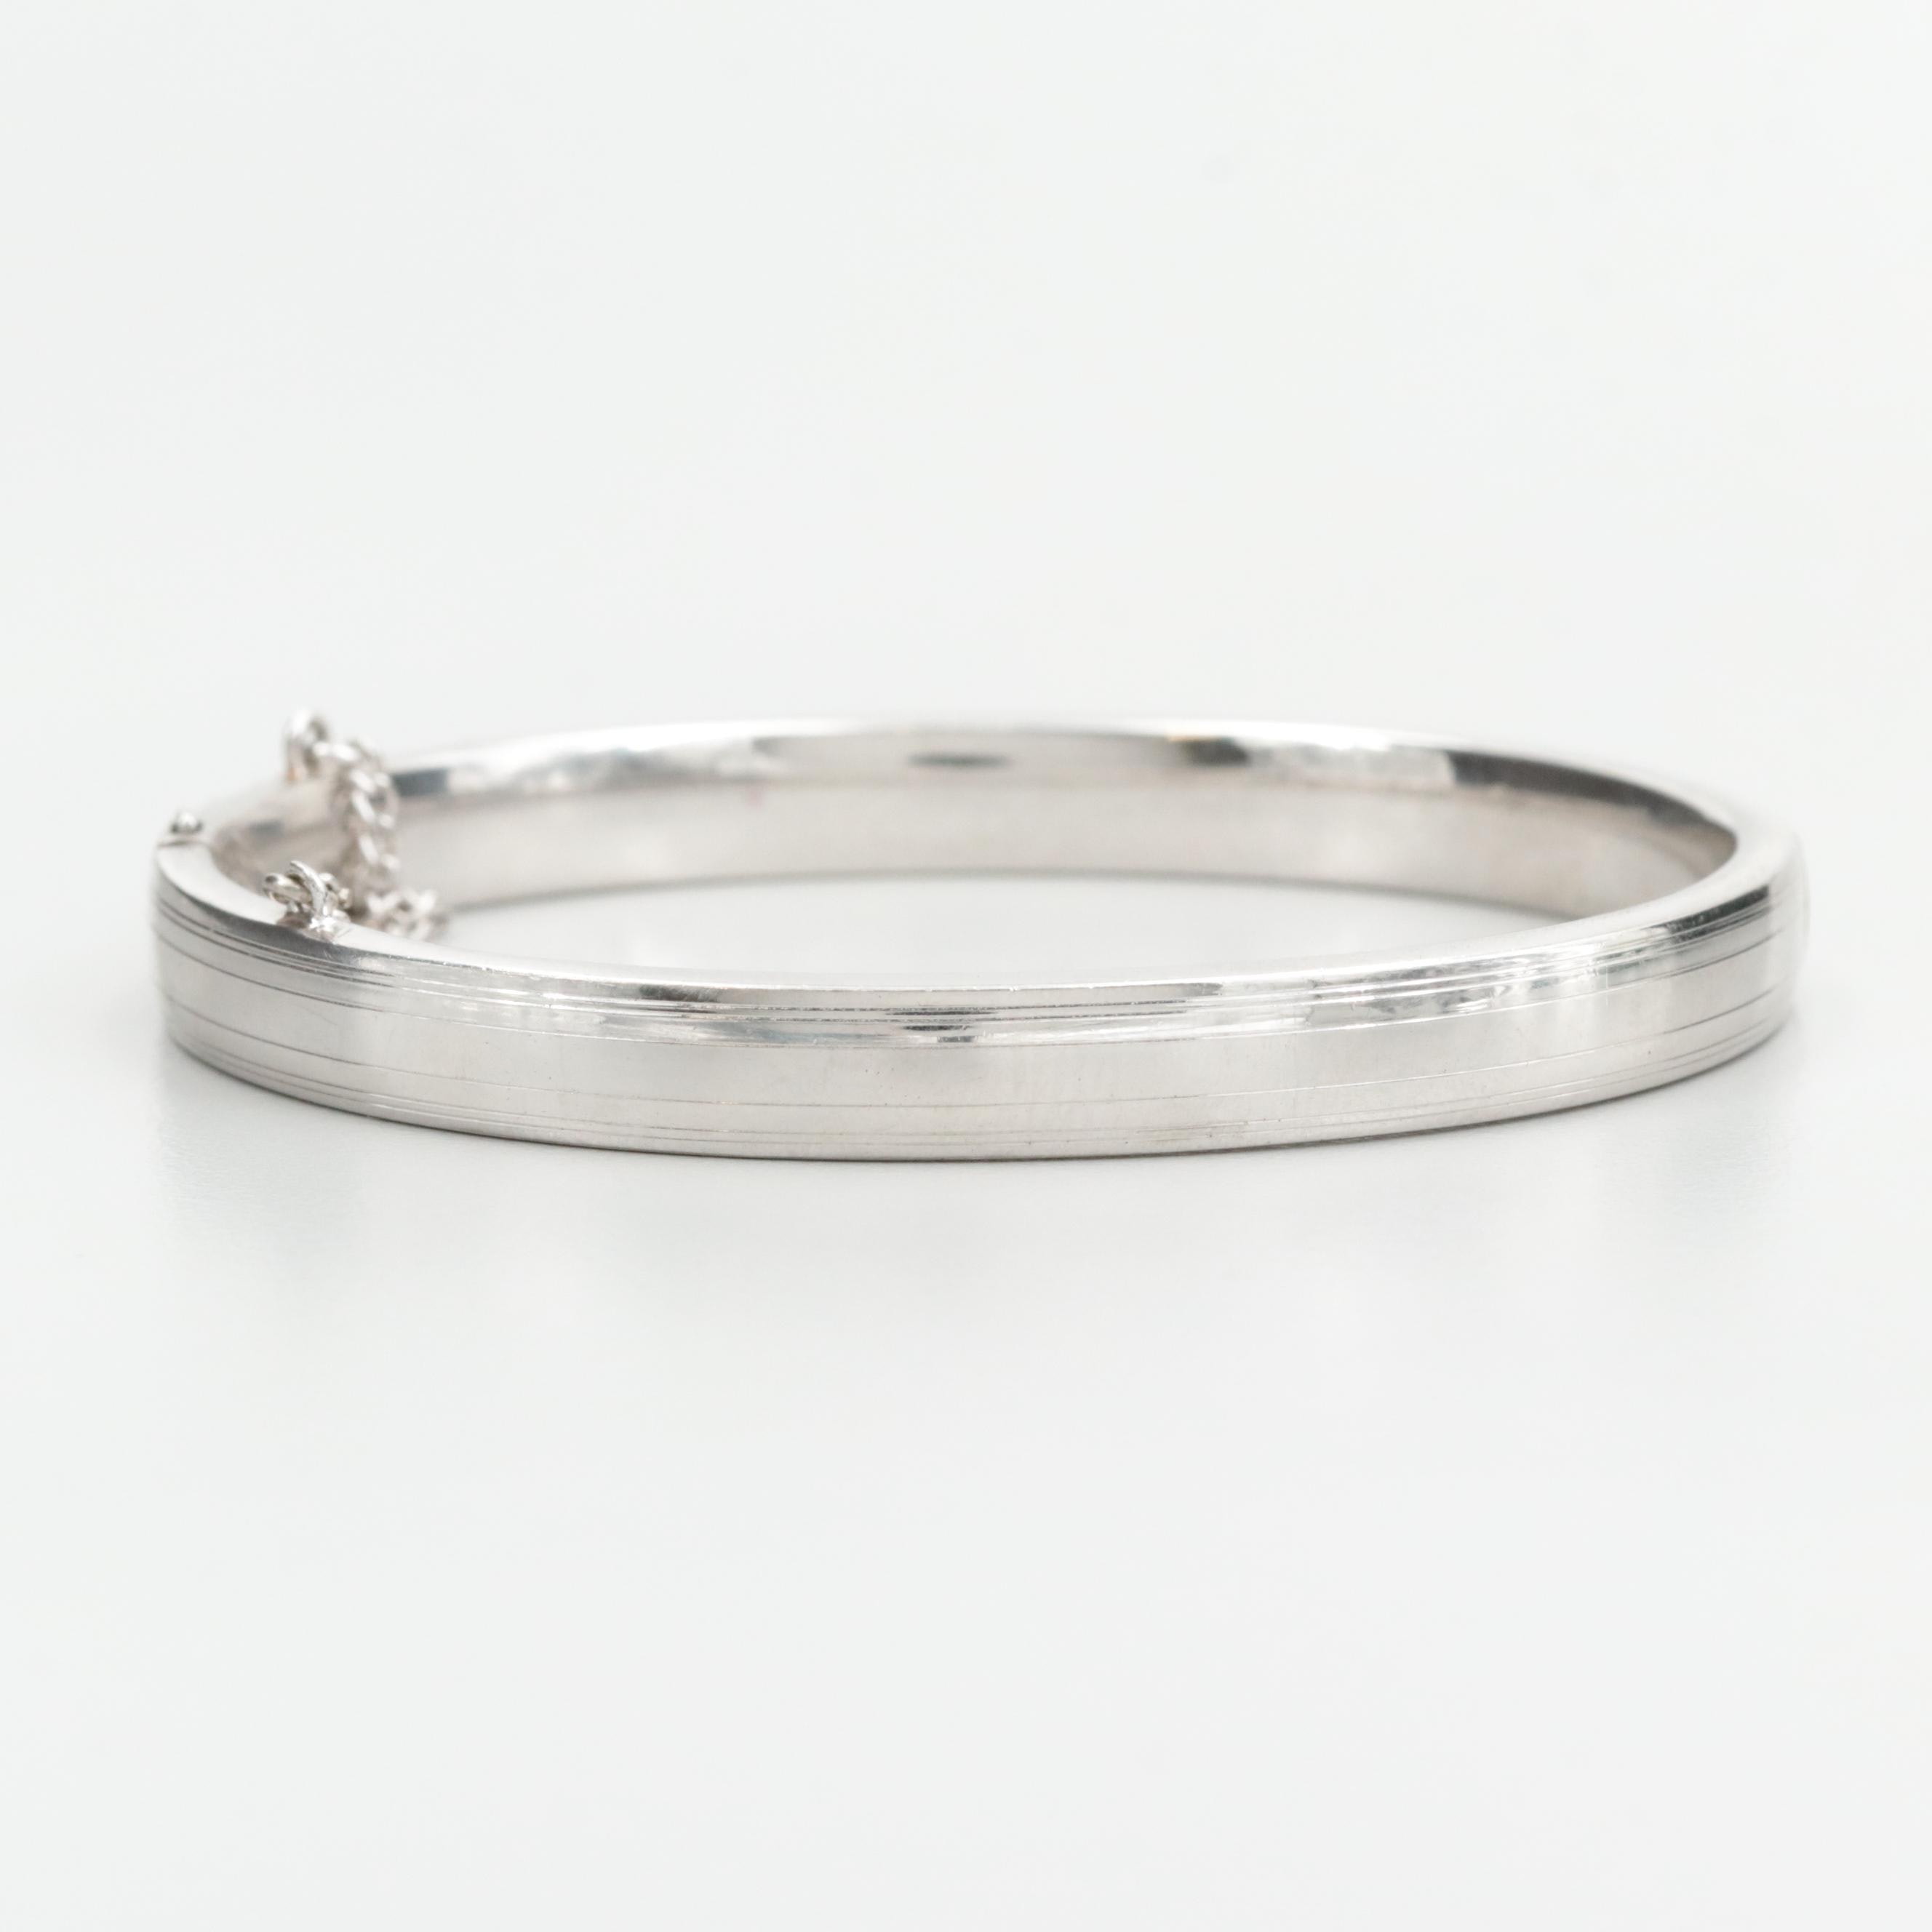 Silver Tone Hinged Bangle Bracelet